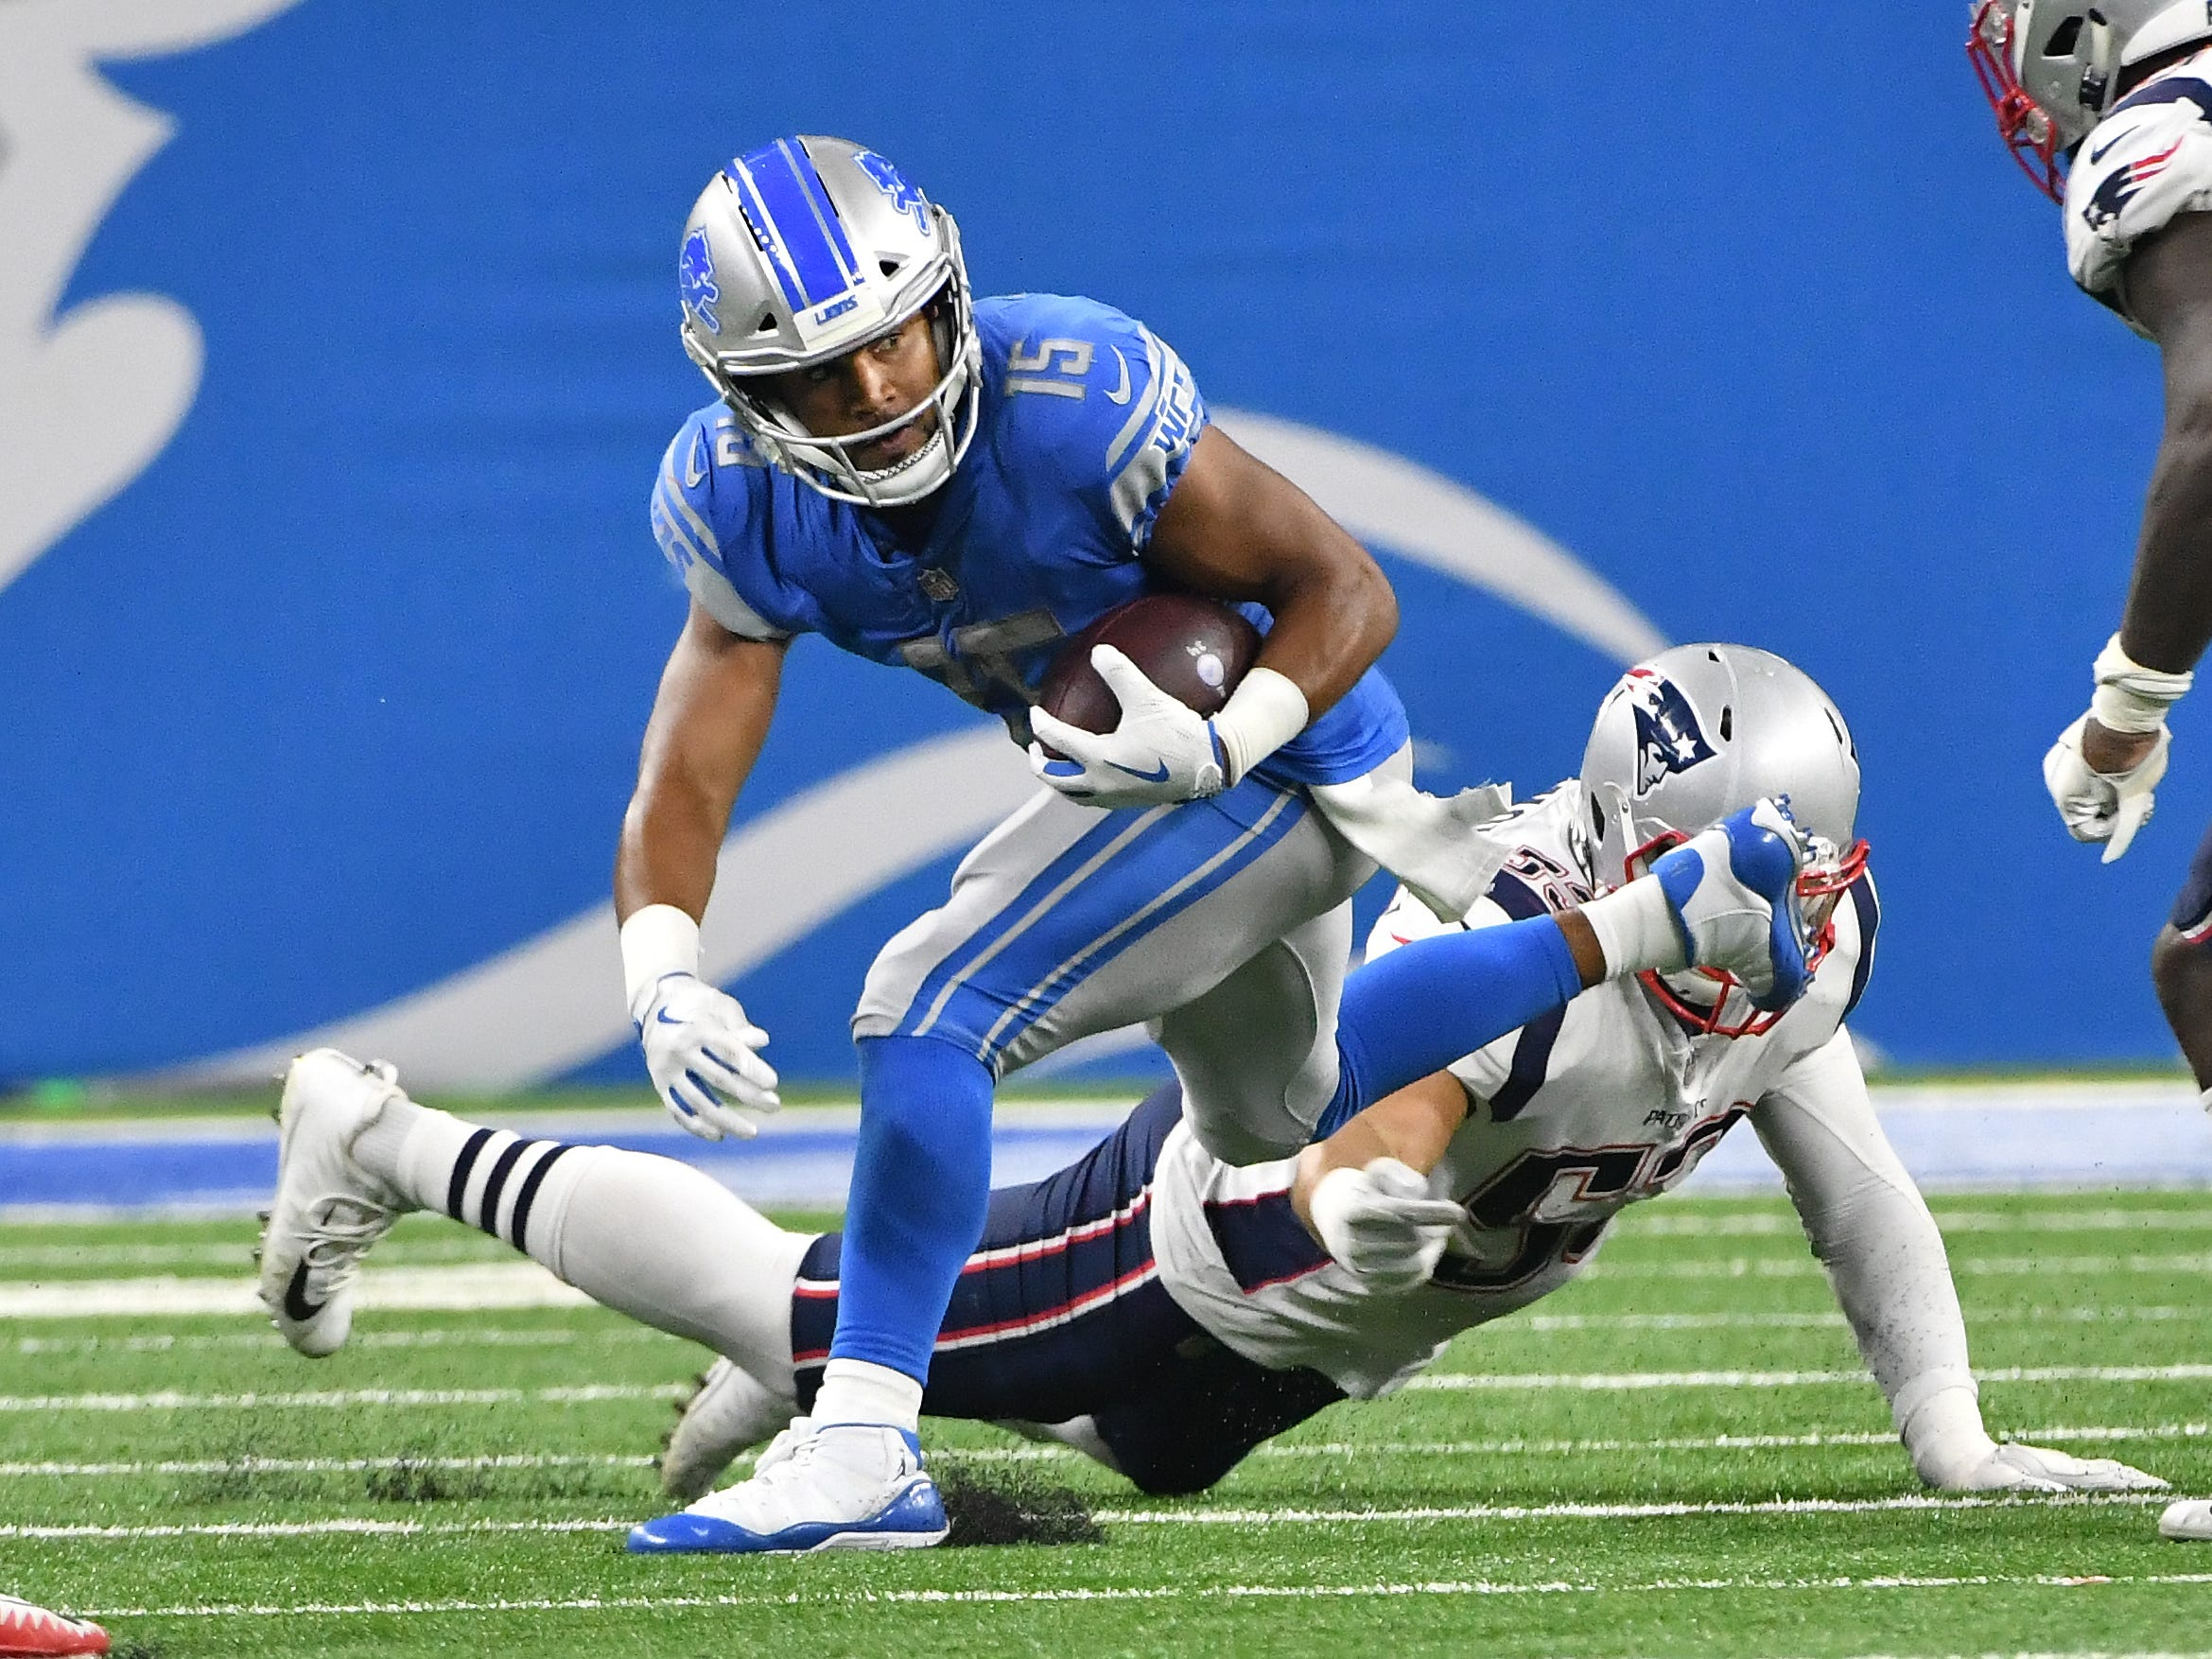 Lions' Golden Tate runs after a reception in the second quarter.